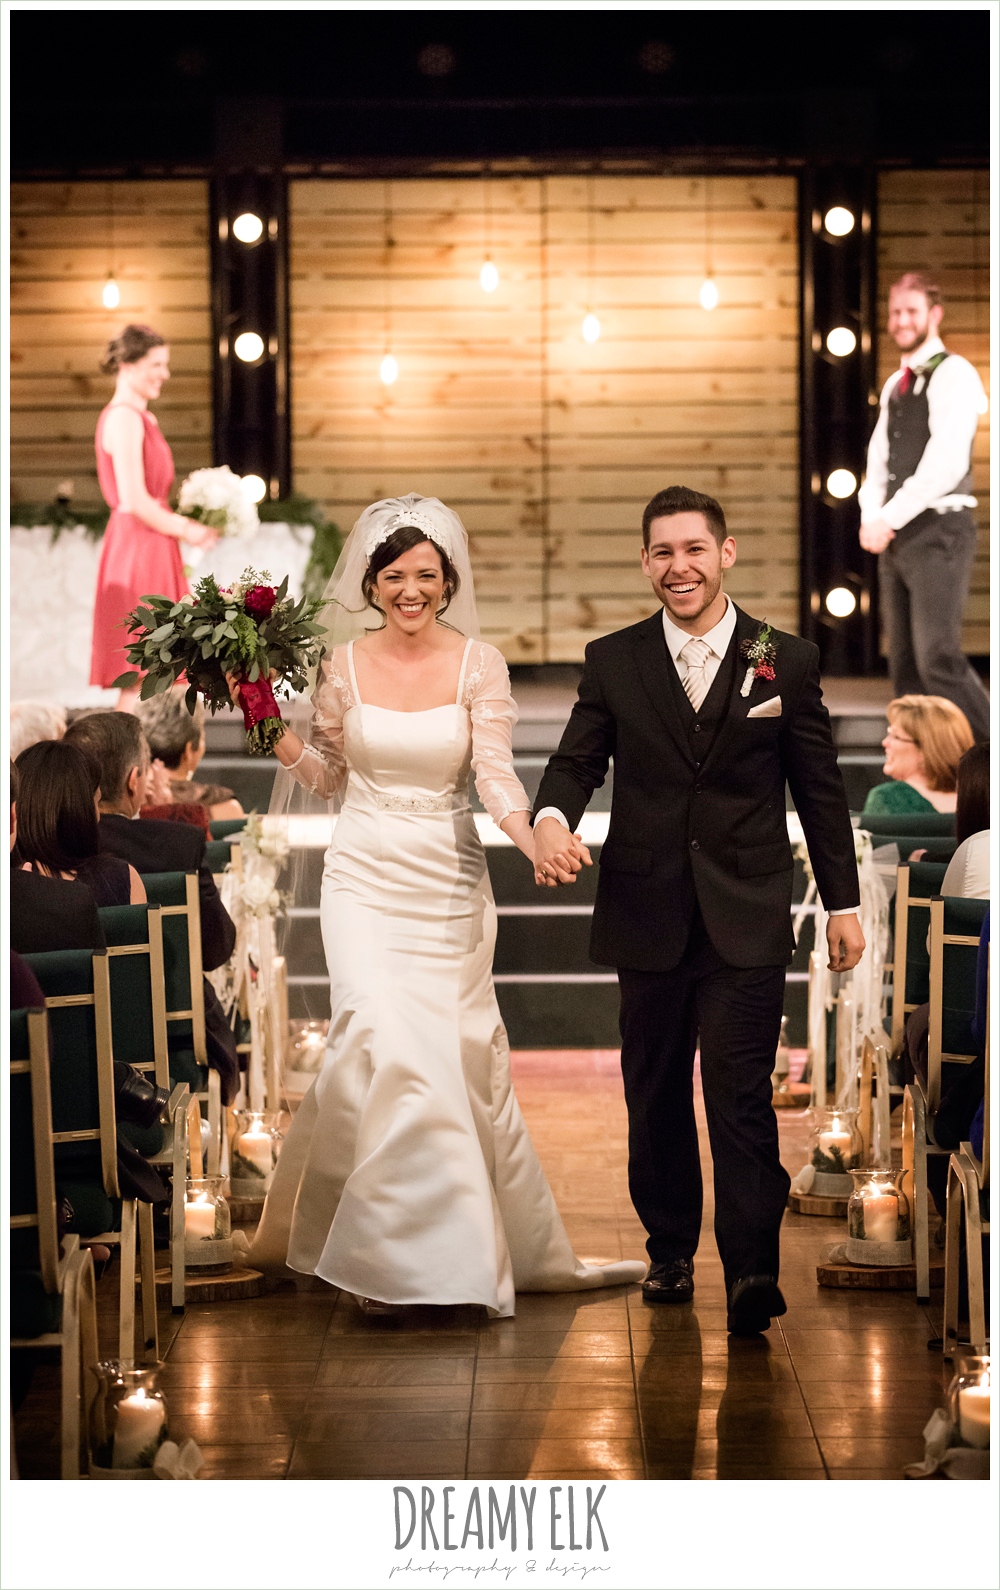 bride and groom walking down the aisle, winter december church wedding photo {dreamy elk photography and design}